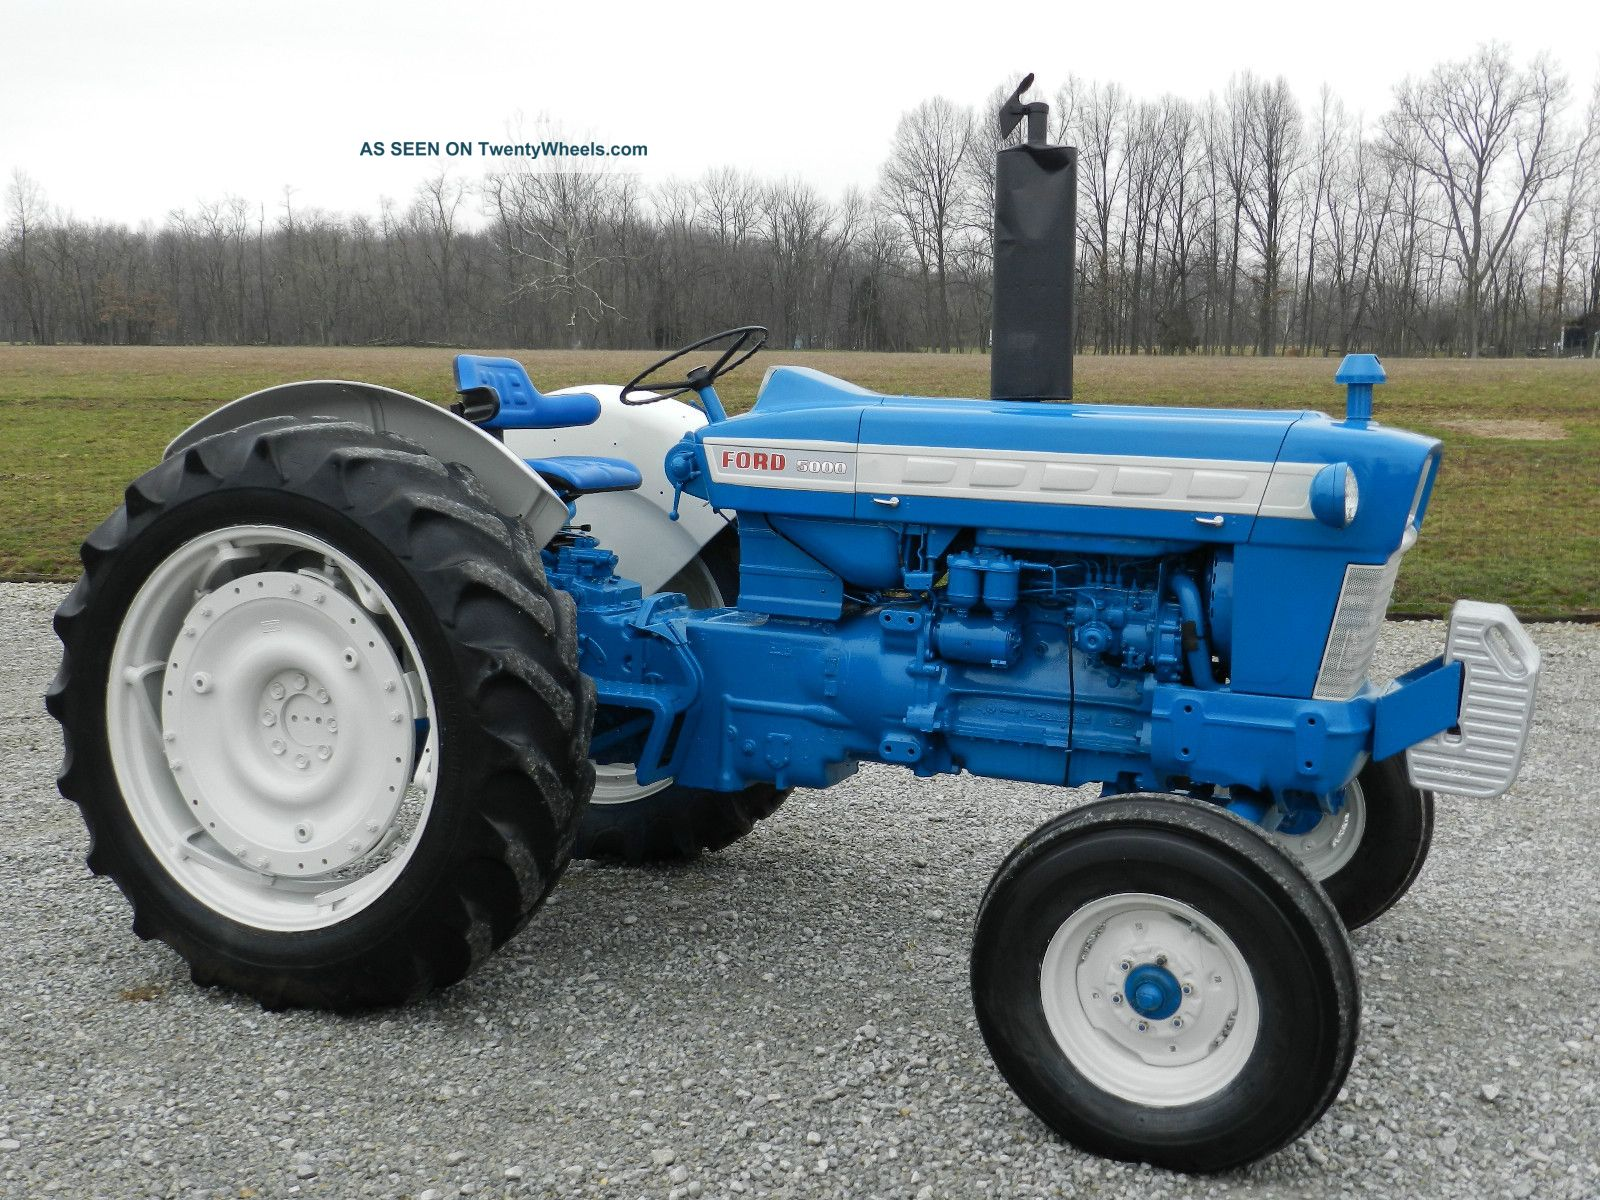 Ford 5000 Tractor Specs : Ford tractor related keywords